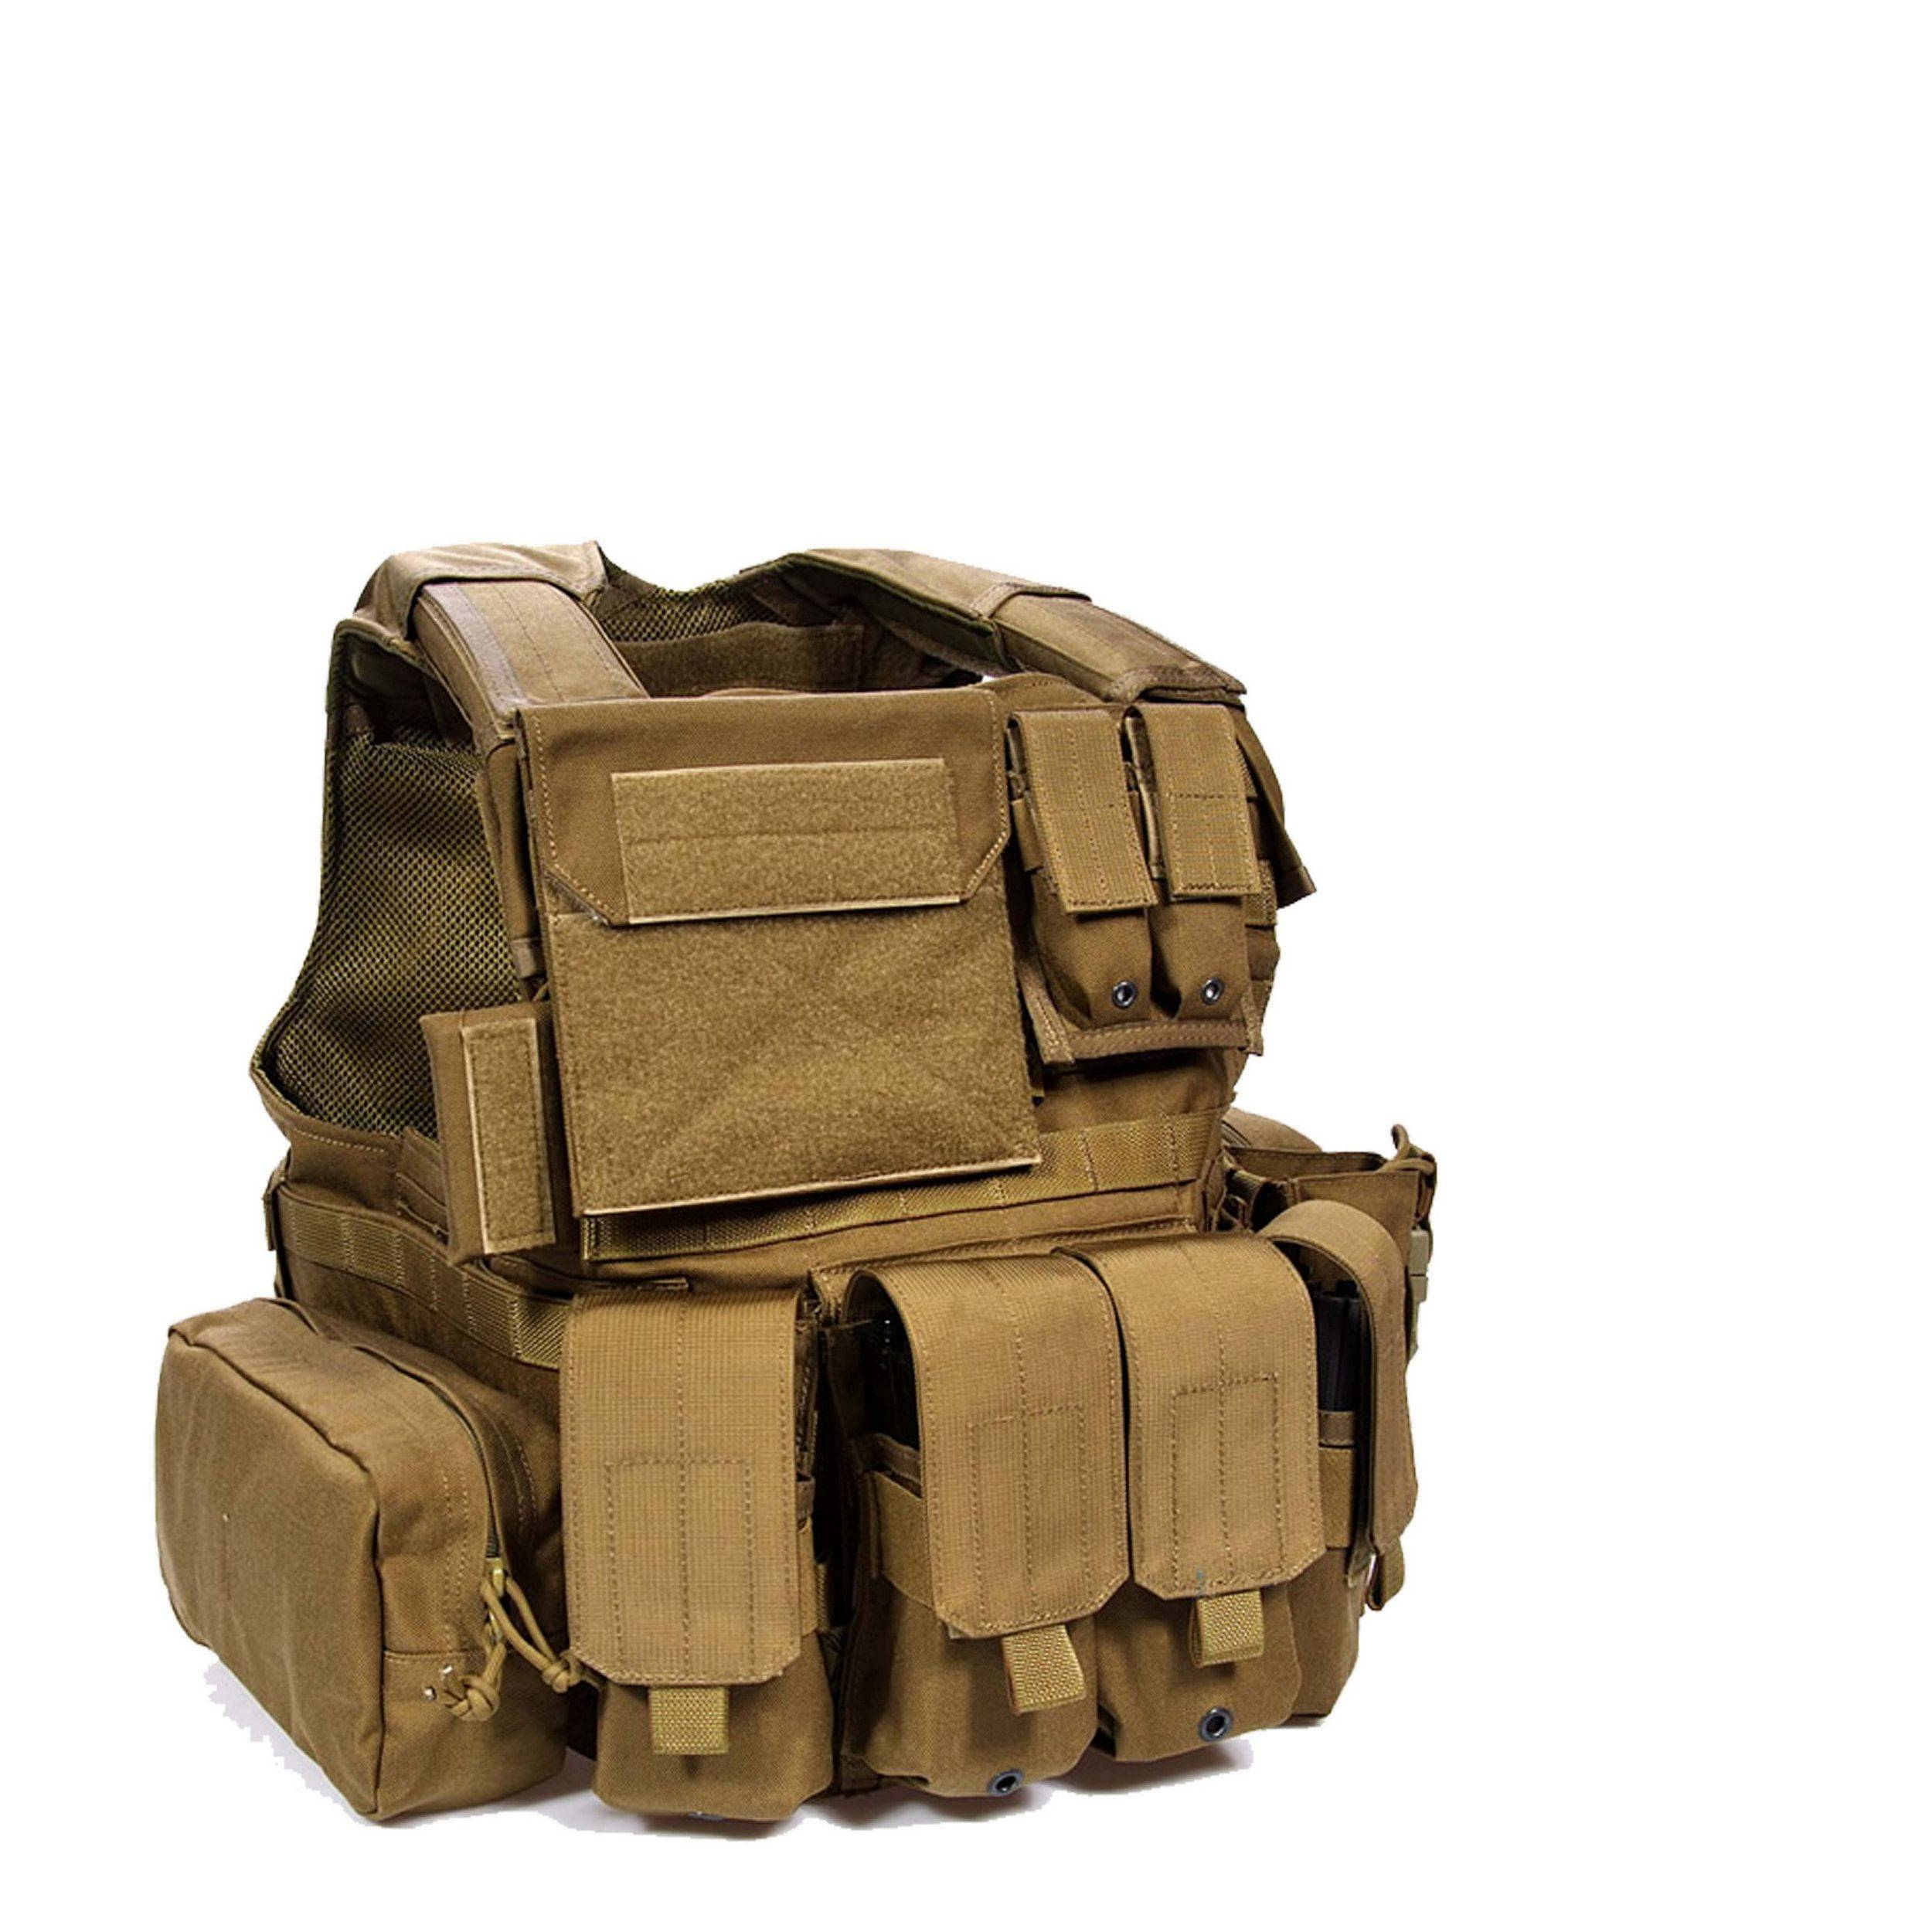 KL-07 Tactical Vest